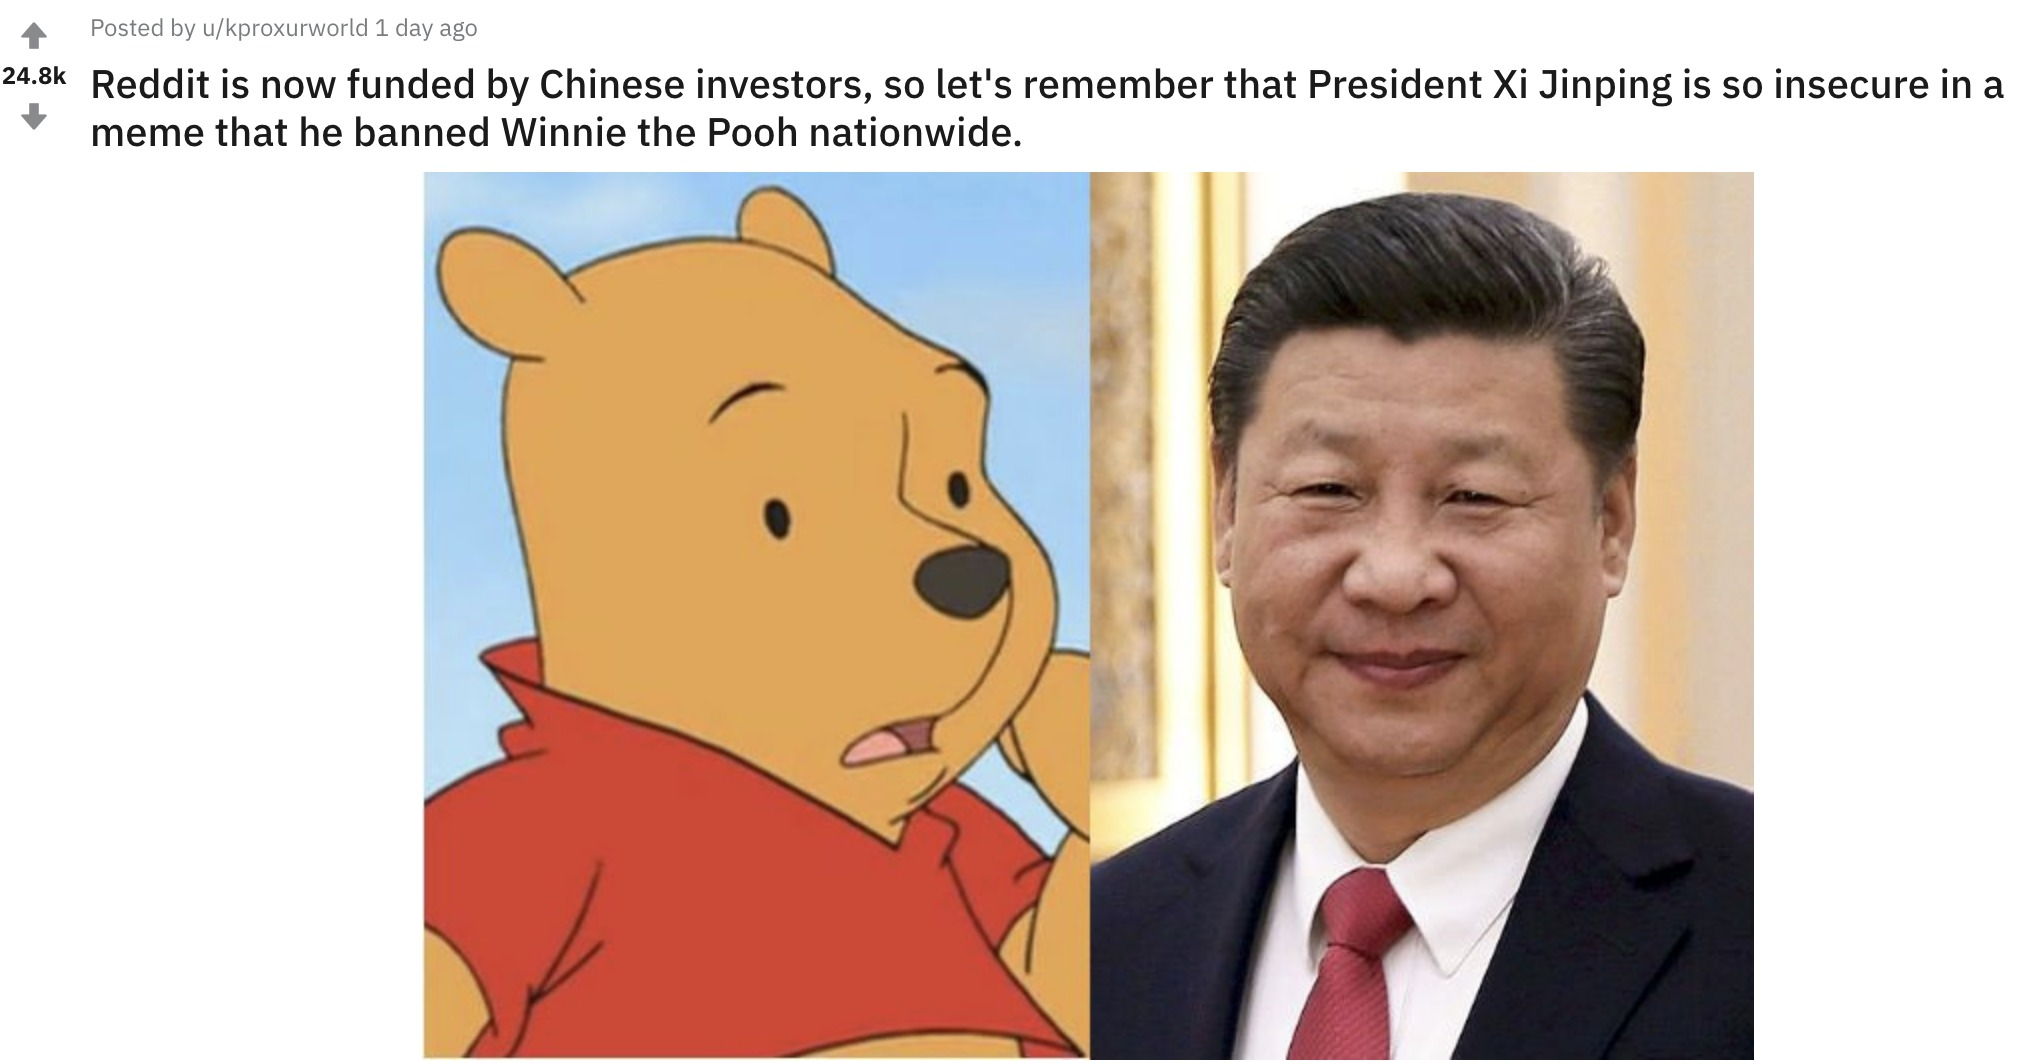 Reddit suffers from epidemic by Winnie The Pooh for fear of Chinese intervention